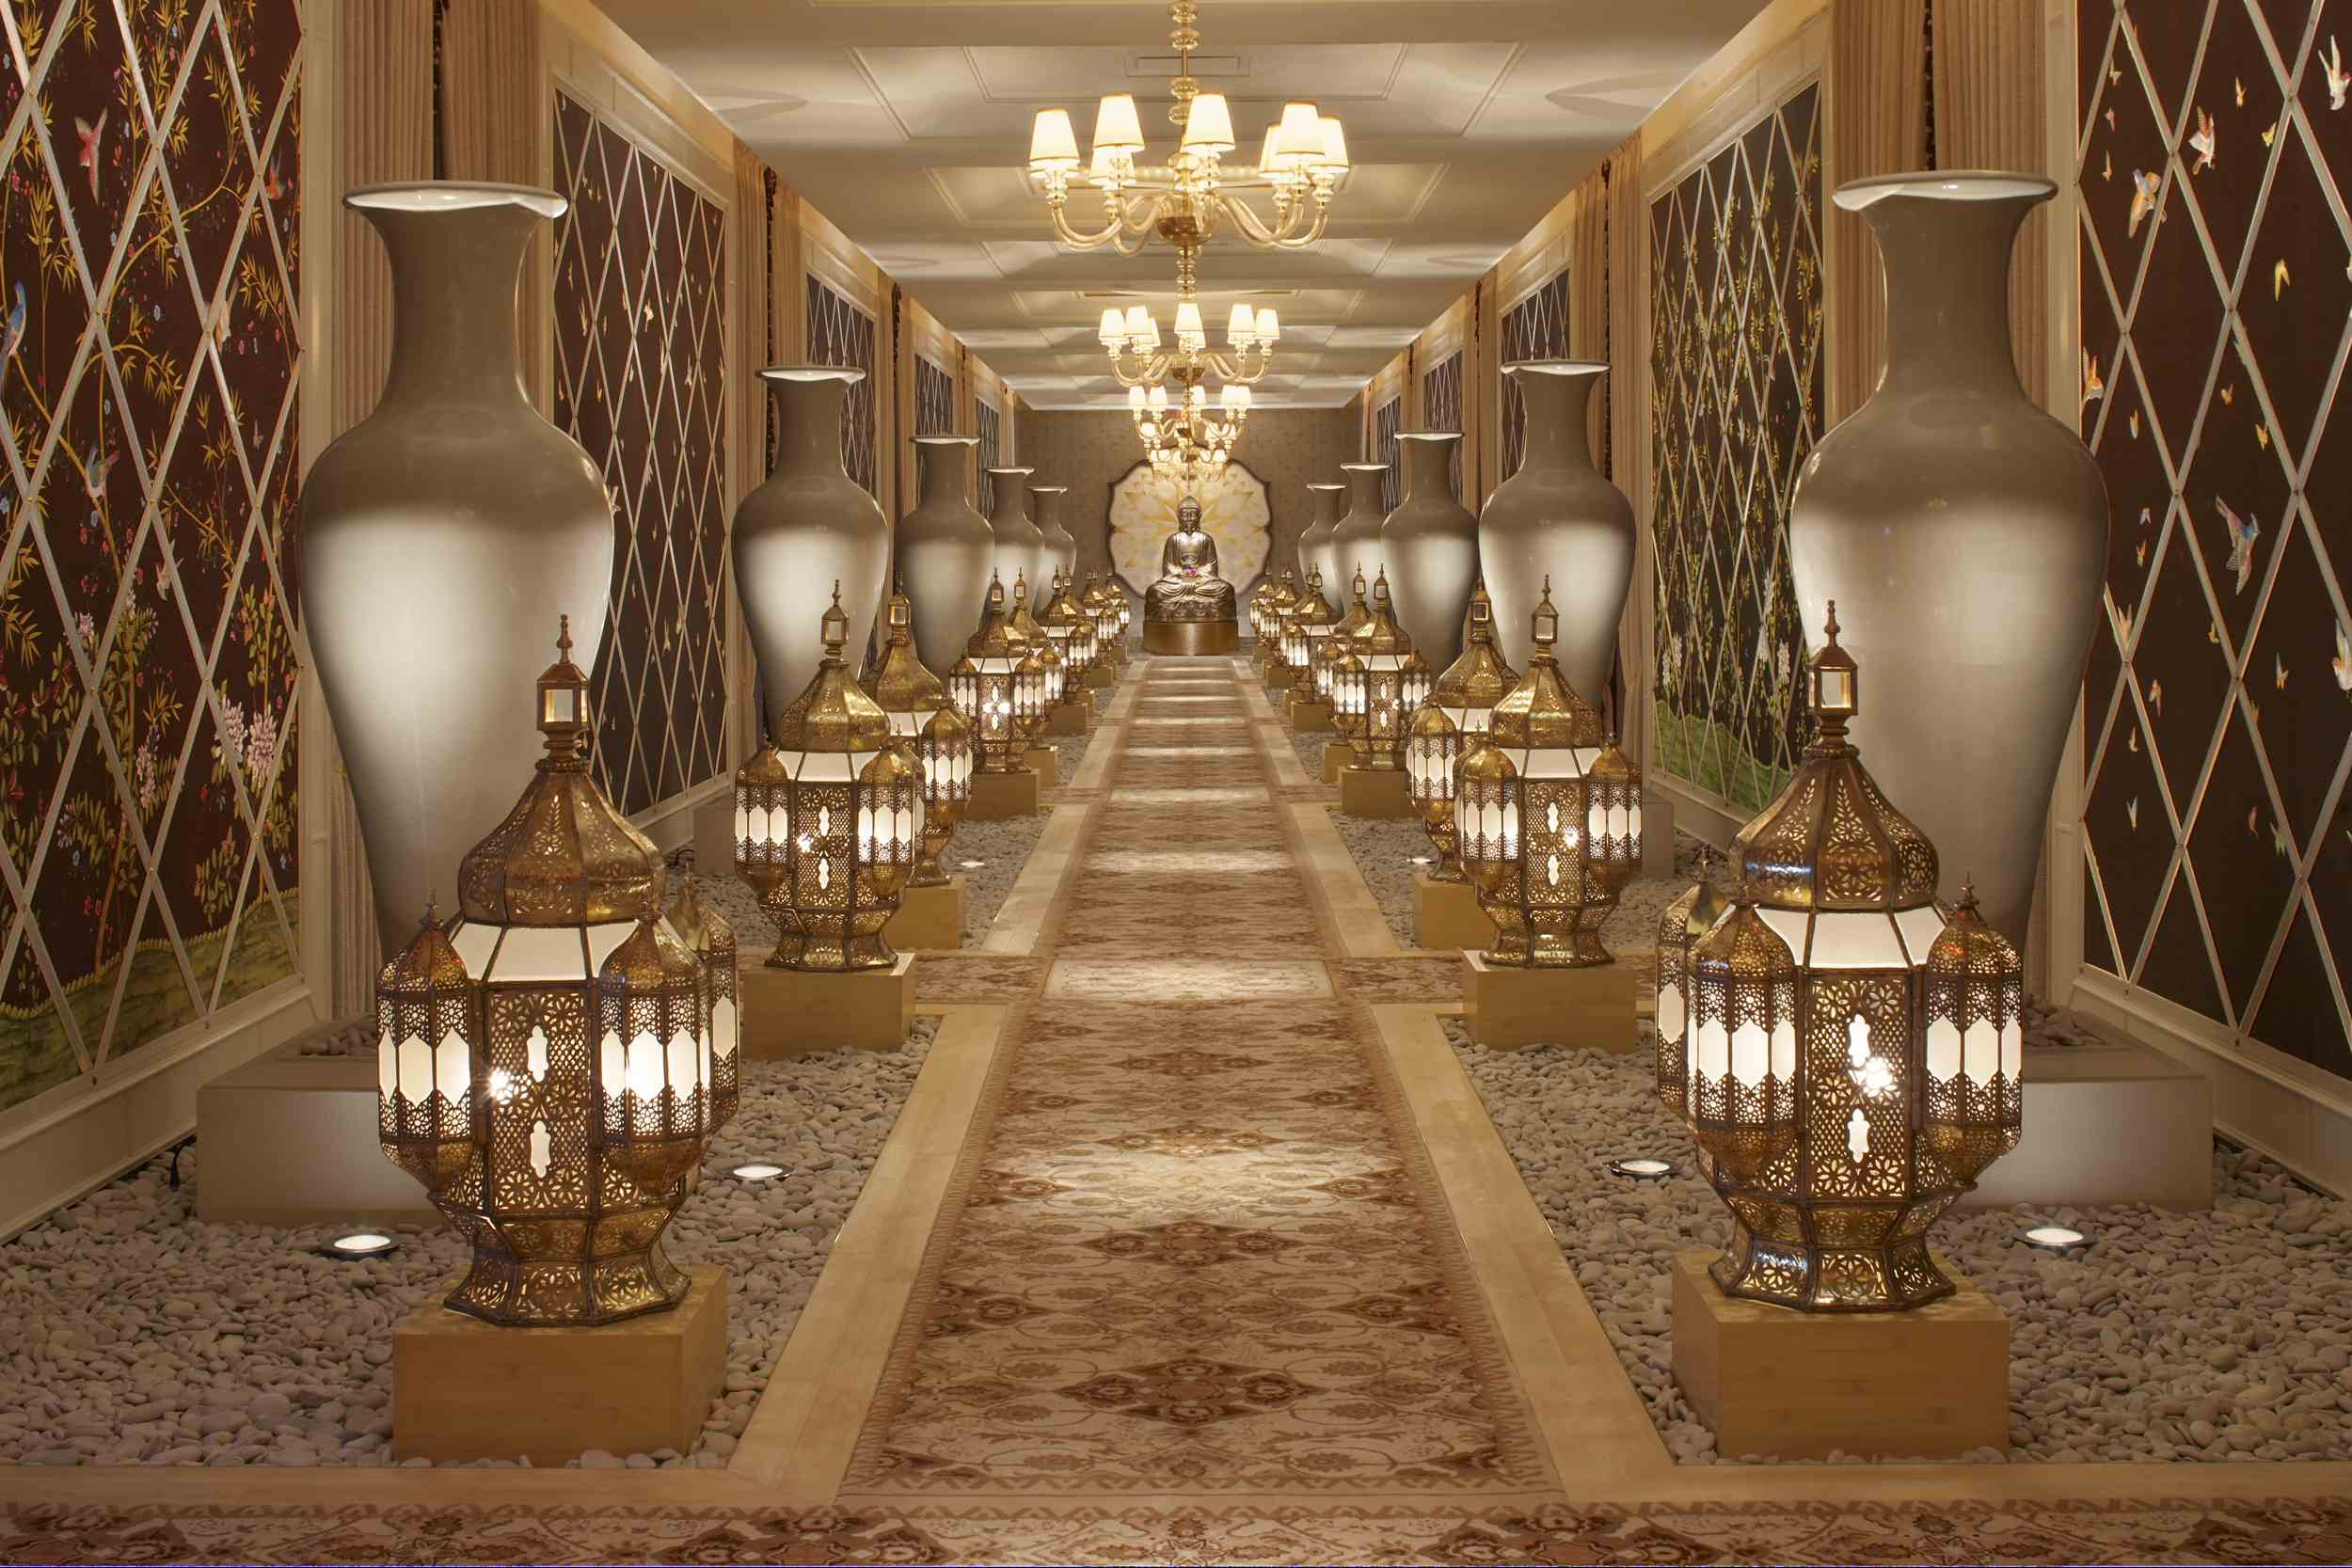 Beautiful hallway Ideas that you will love luxury escapes Top 5 luxury escapes for Women's Day Beautiful hallway Ideas that you will love luxury escapes Top 5 luxury escapes for Women's Day Beautiful hallway Ideas that you will love